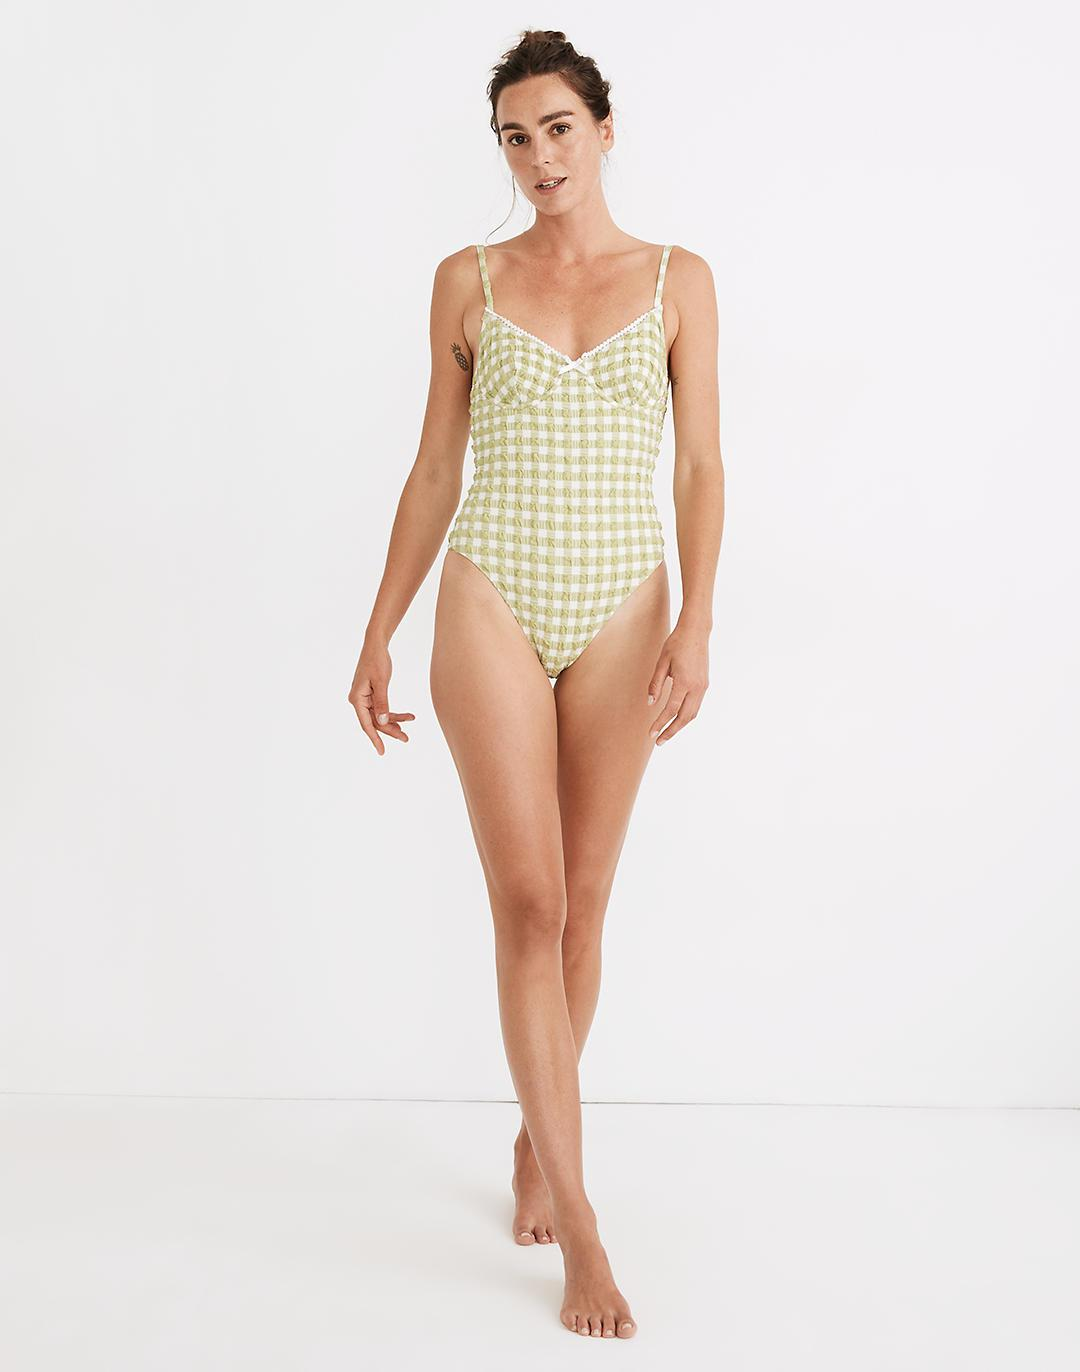 Madewell x Solid & Striped® Taylor One-Piece Swimsuit in Textural Gingham